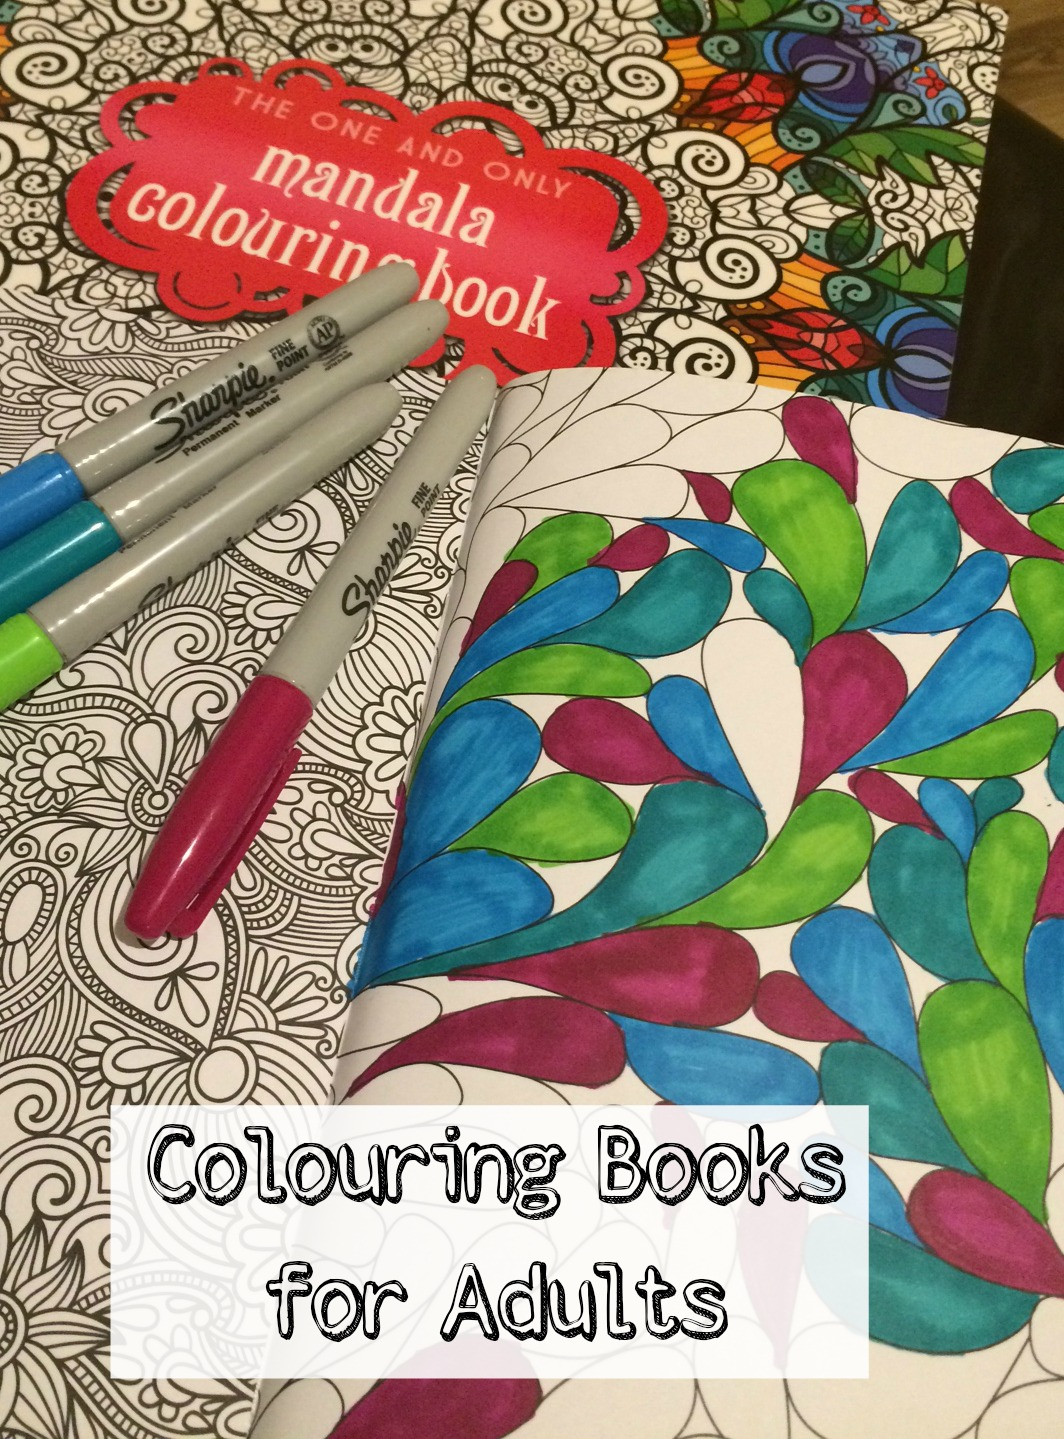 COLOURINGadults